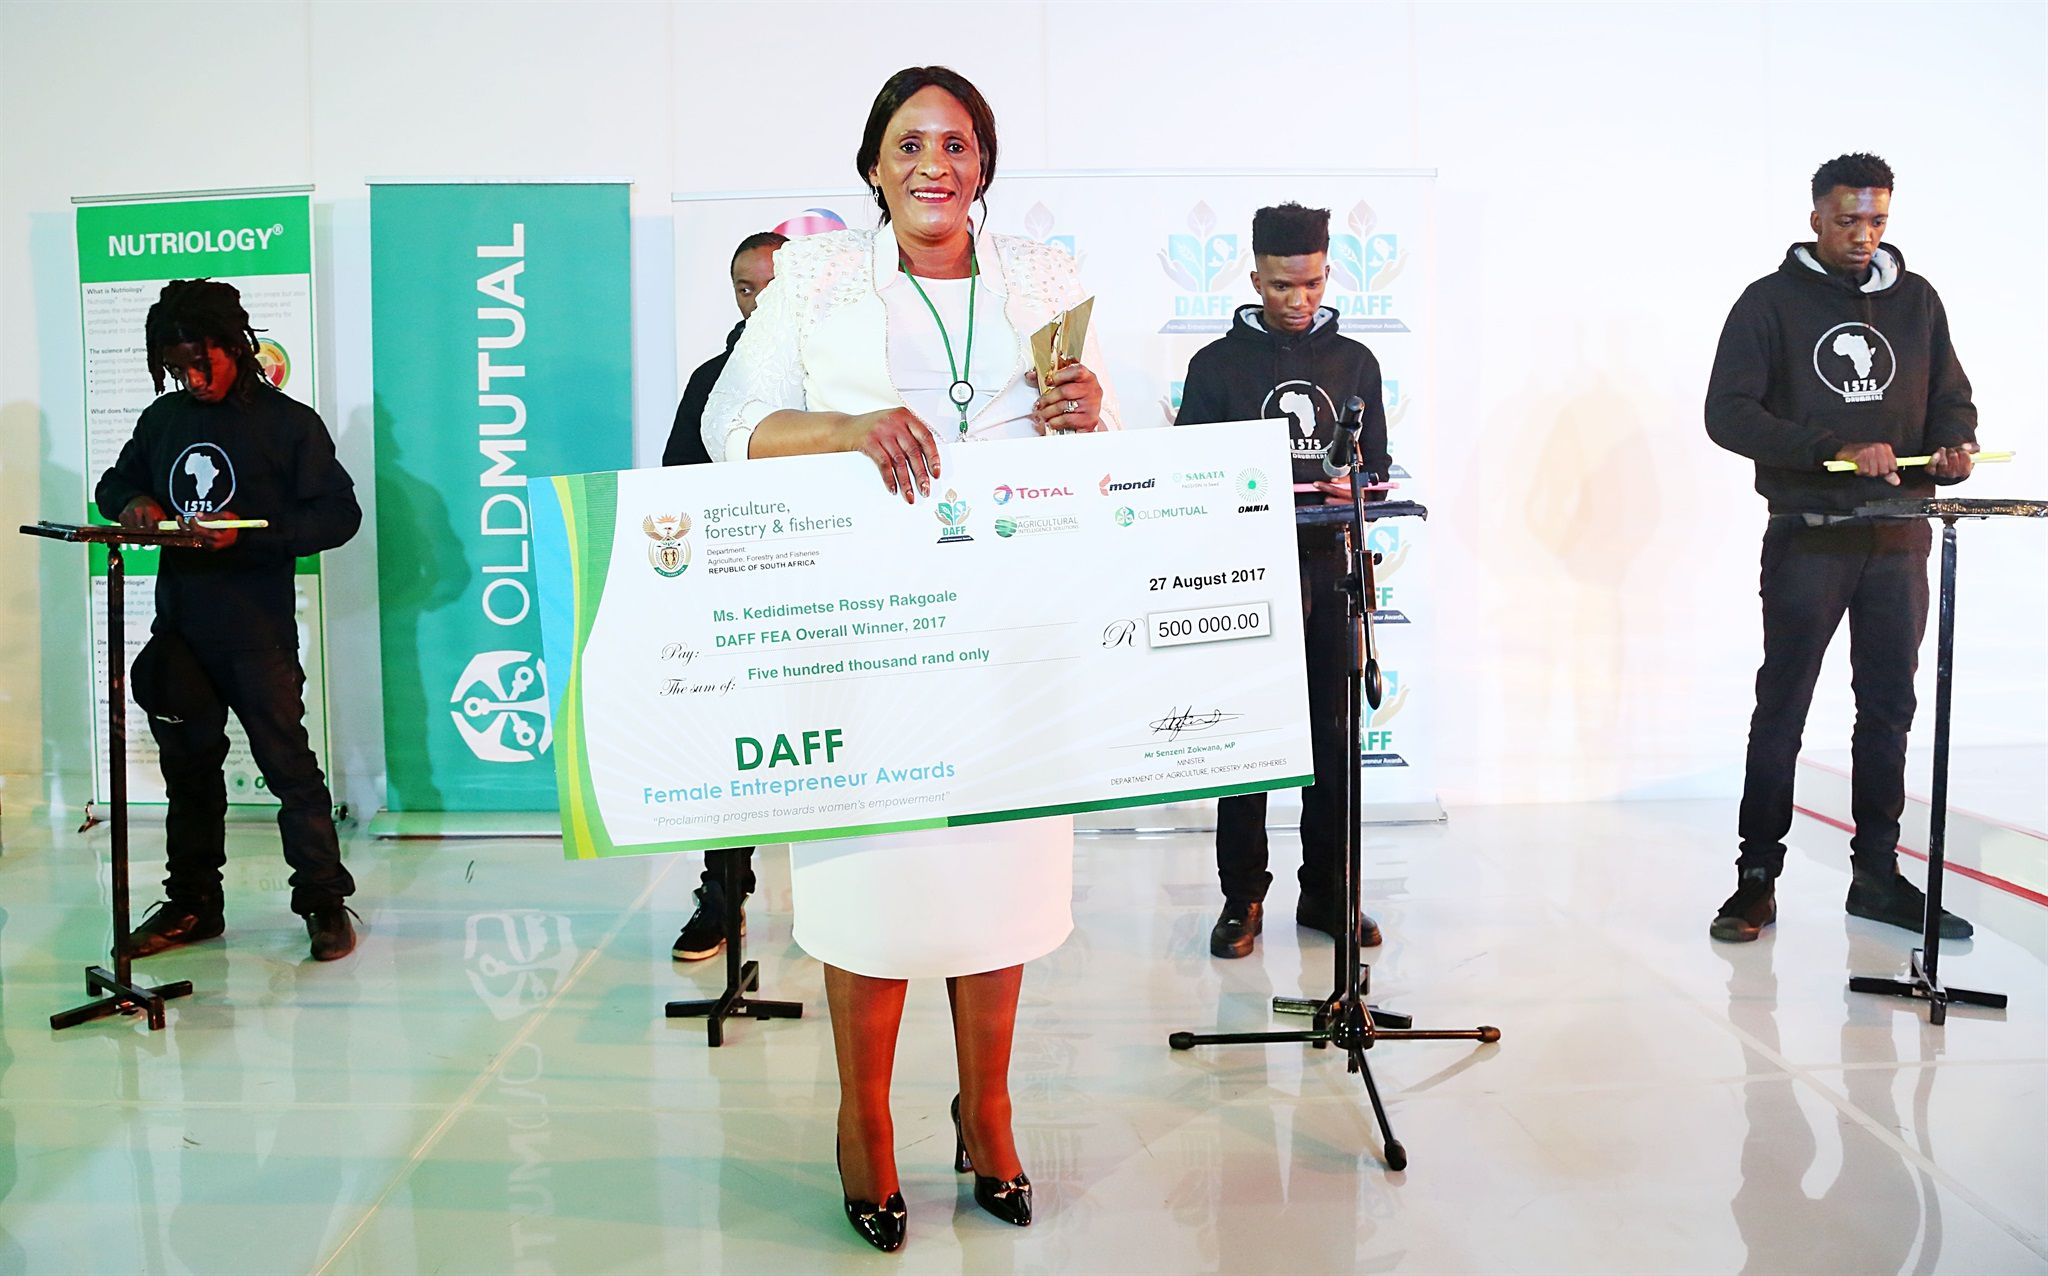 Daff Awards Top Female Entrepreneurs In Agriculture, Forestry And Fisheries photo